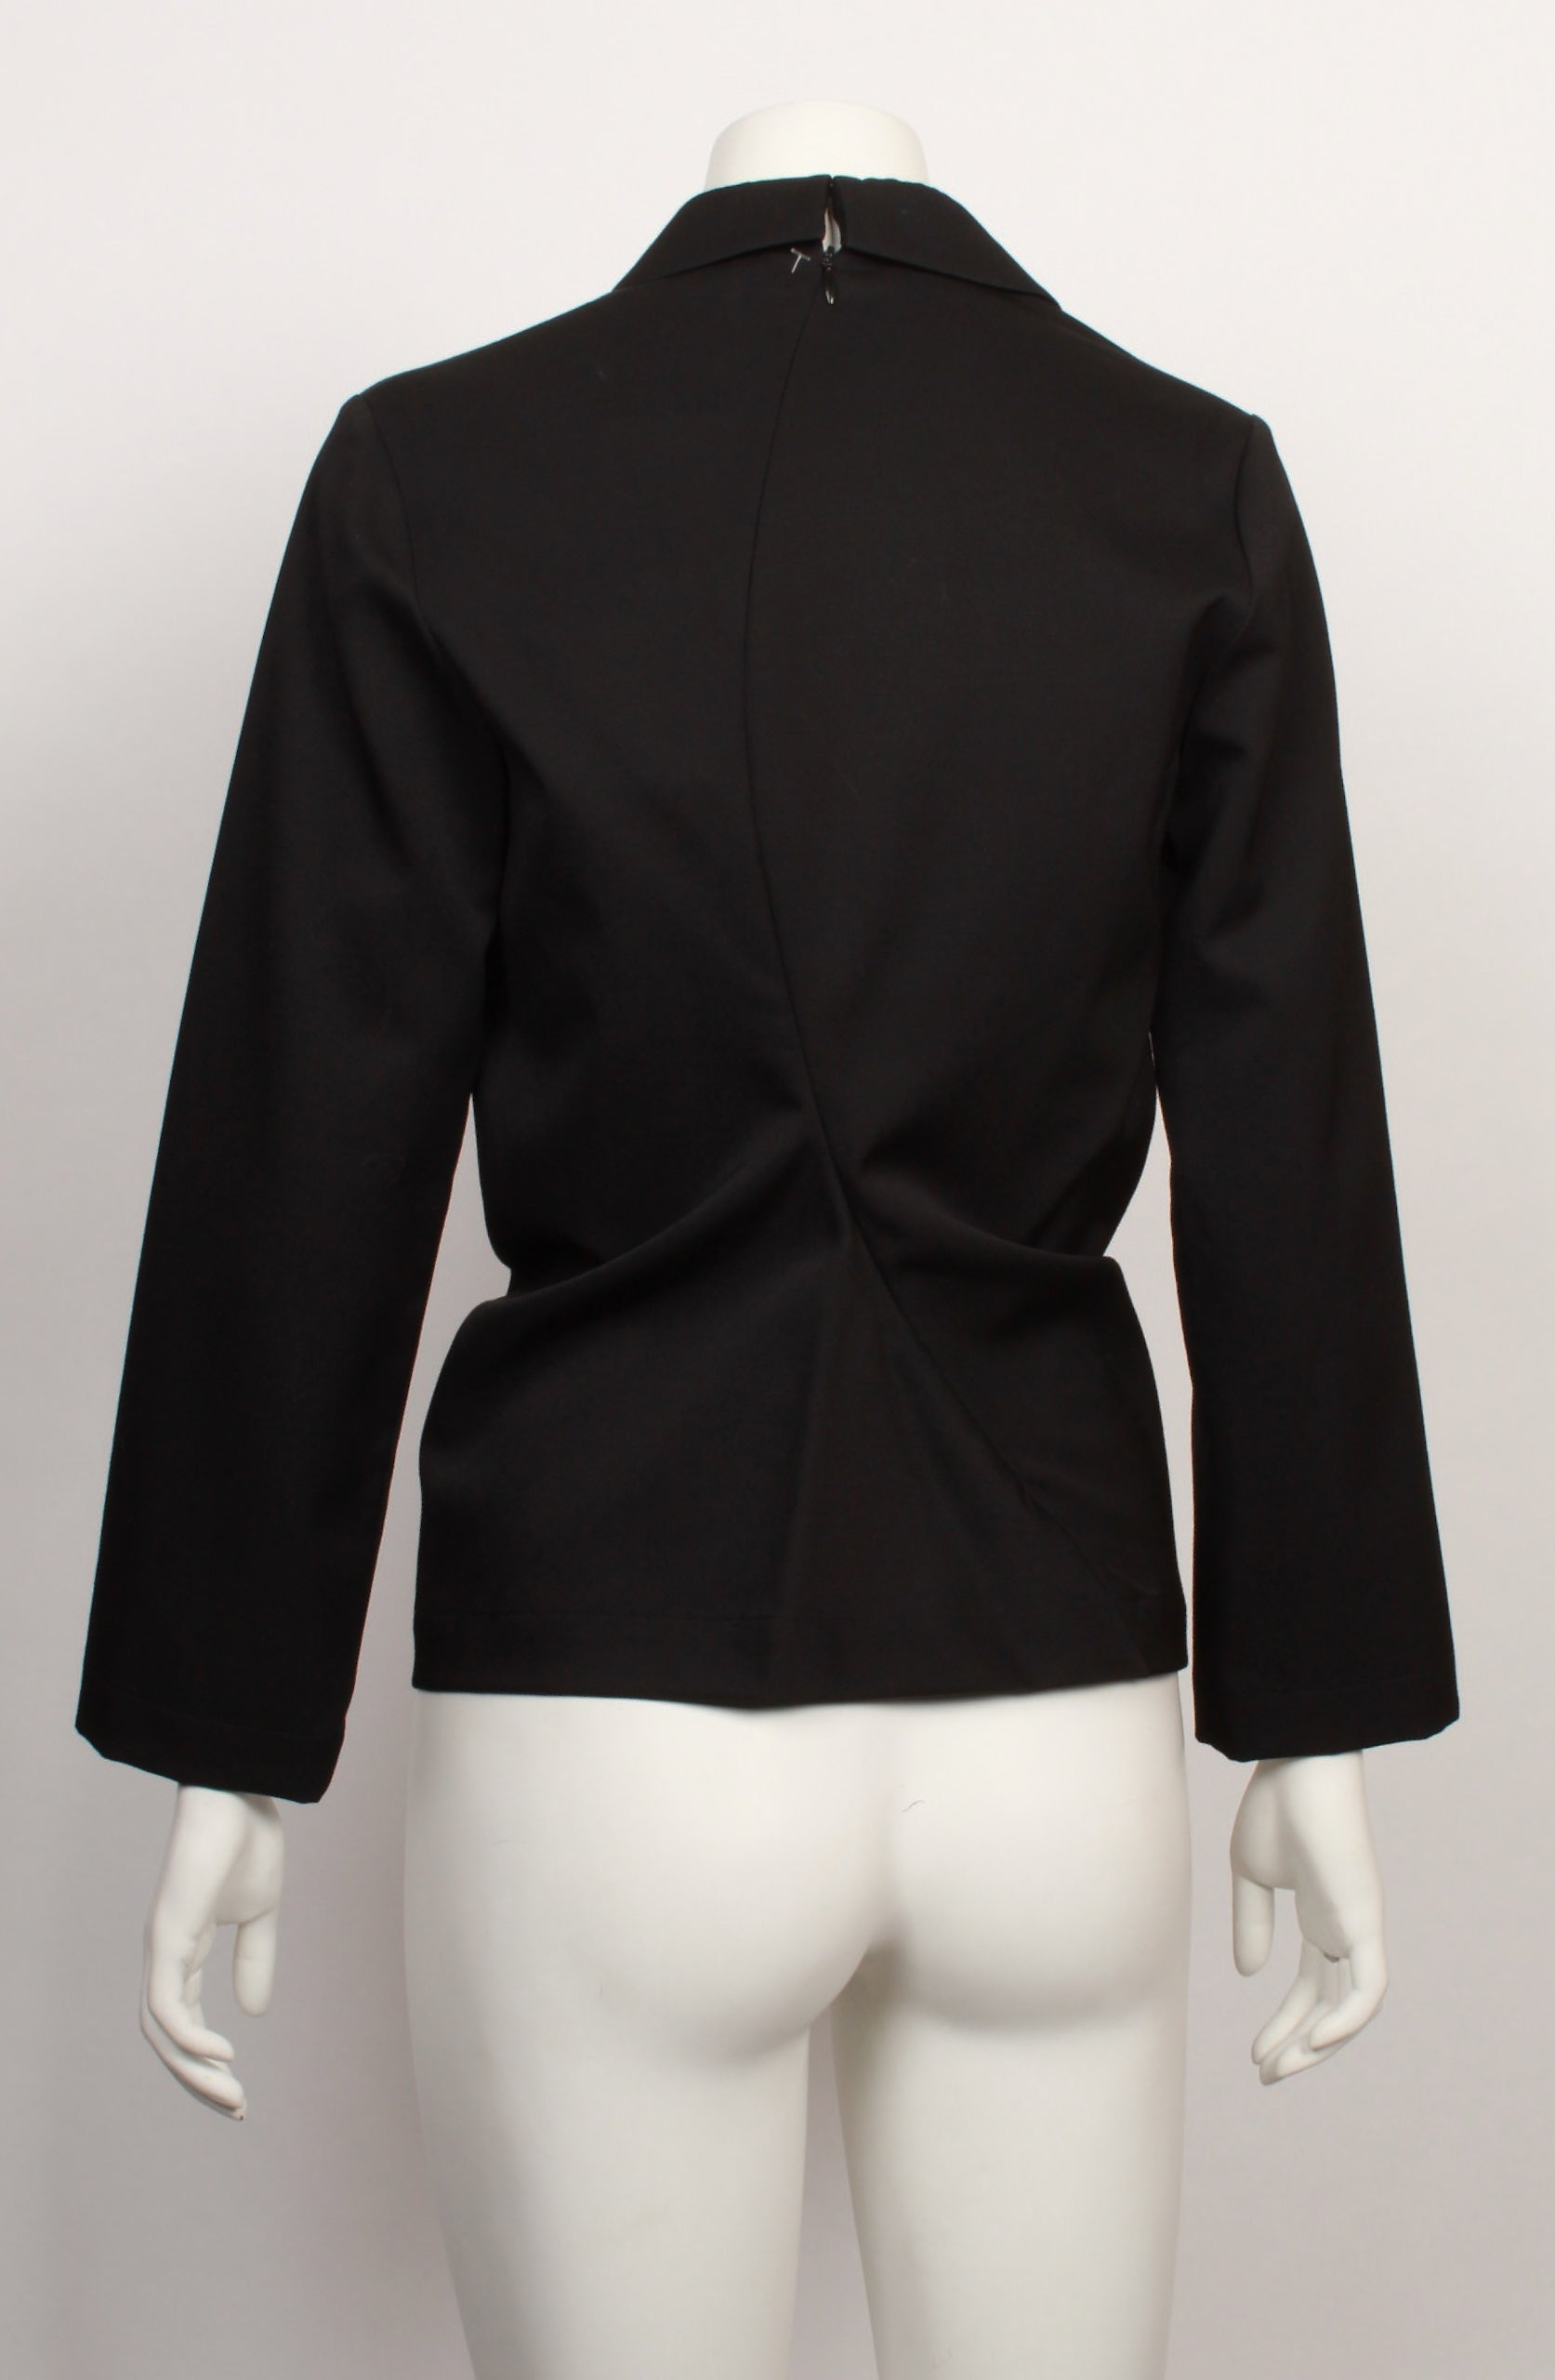 8f45439e2db Junya Watanabe Comme Des Garcons Shell Top For Sale at 1stdibs